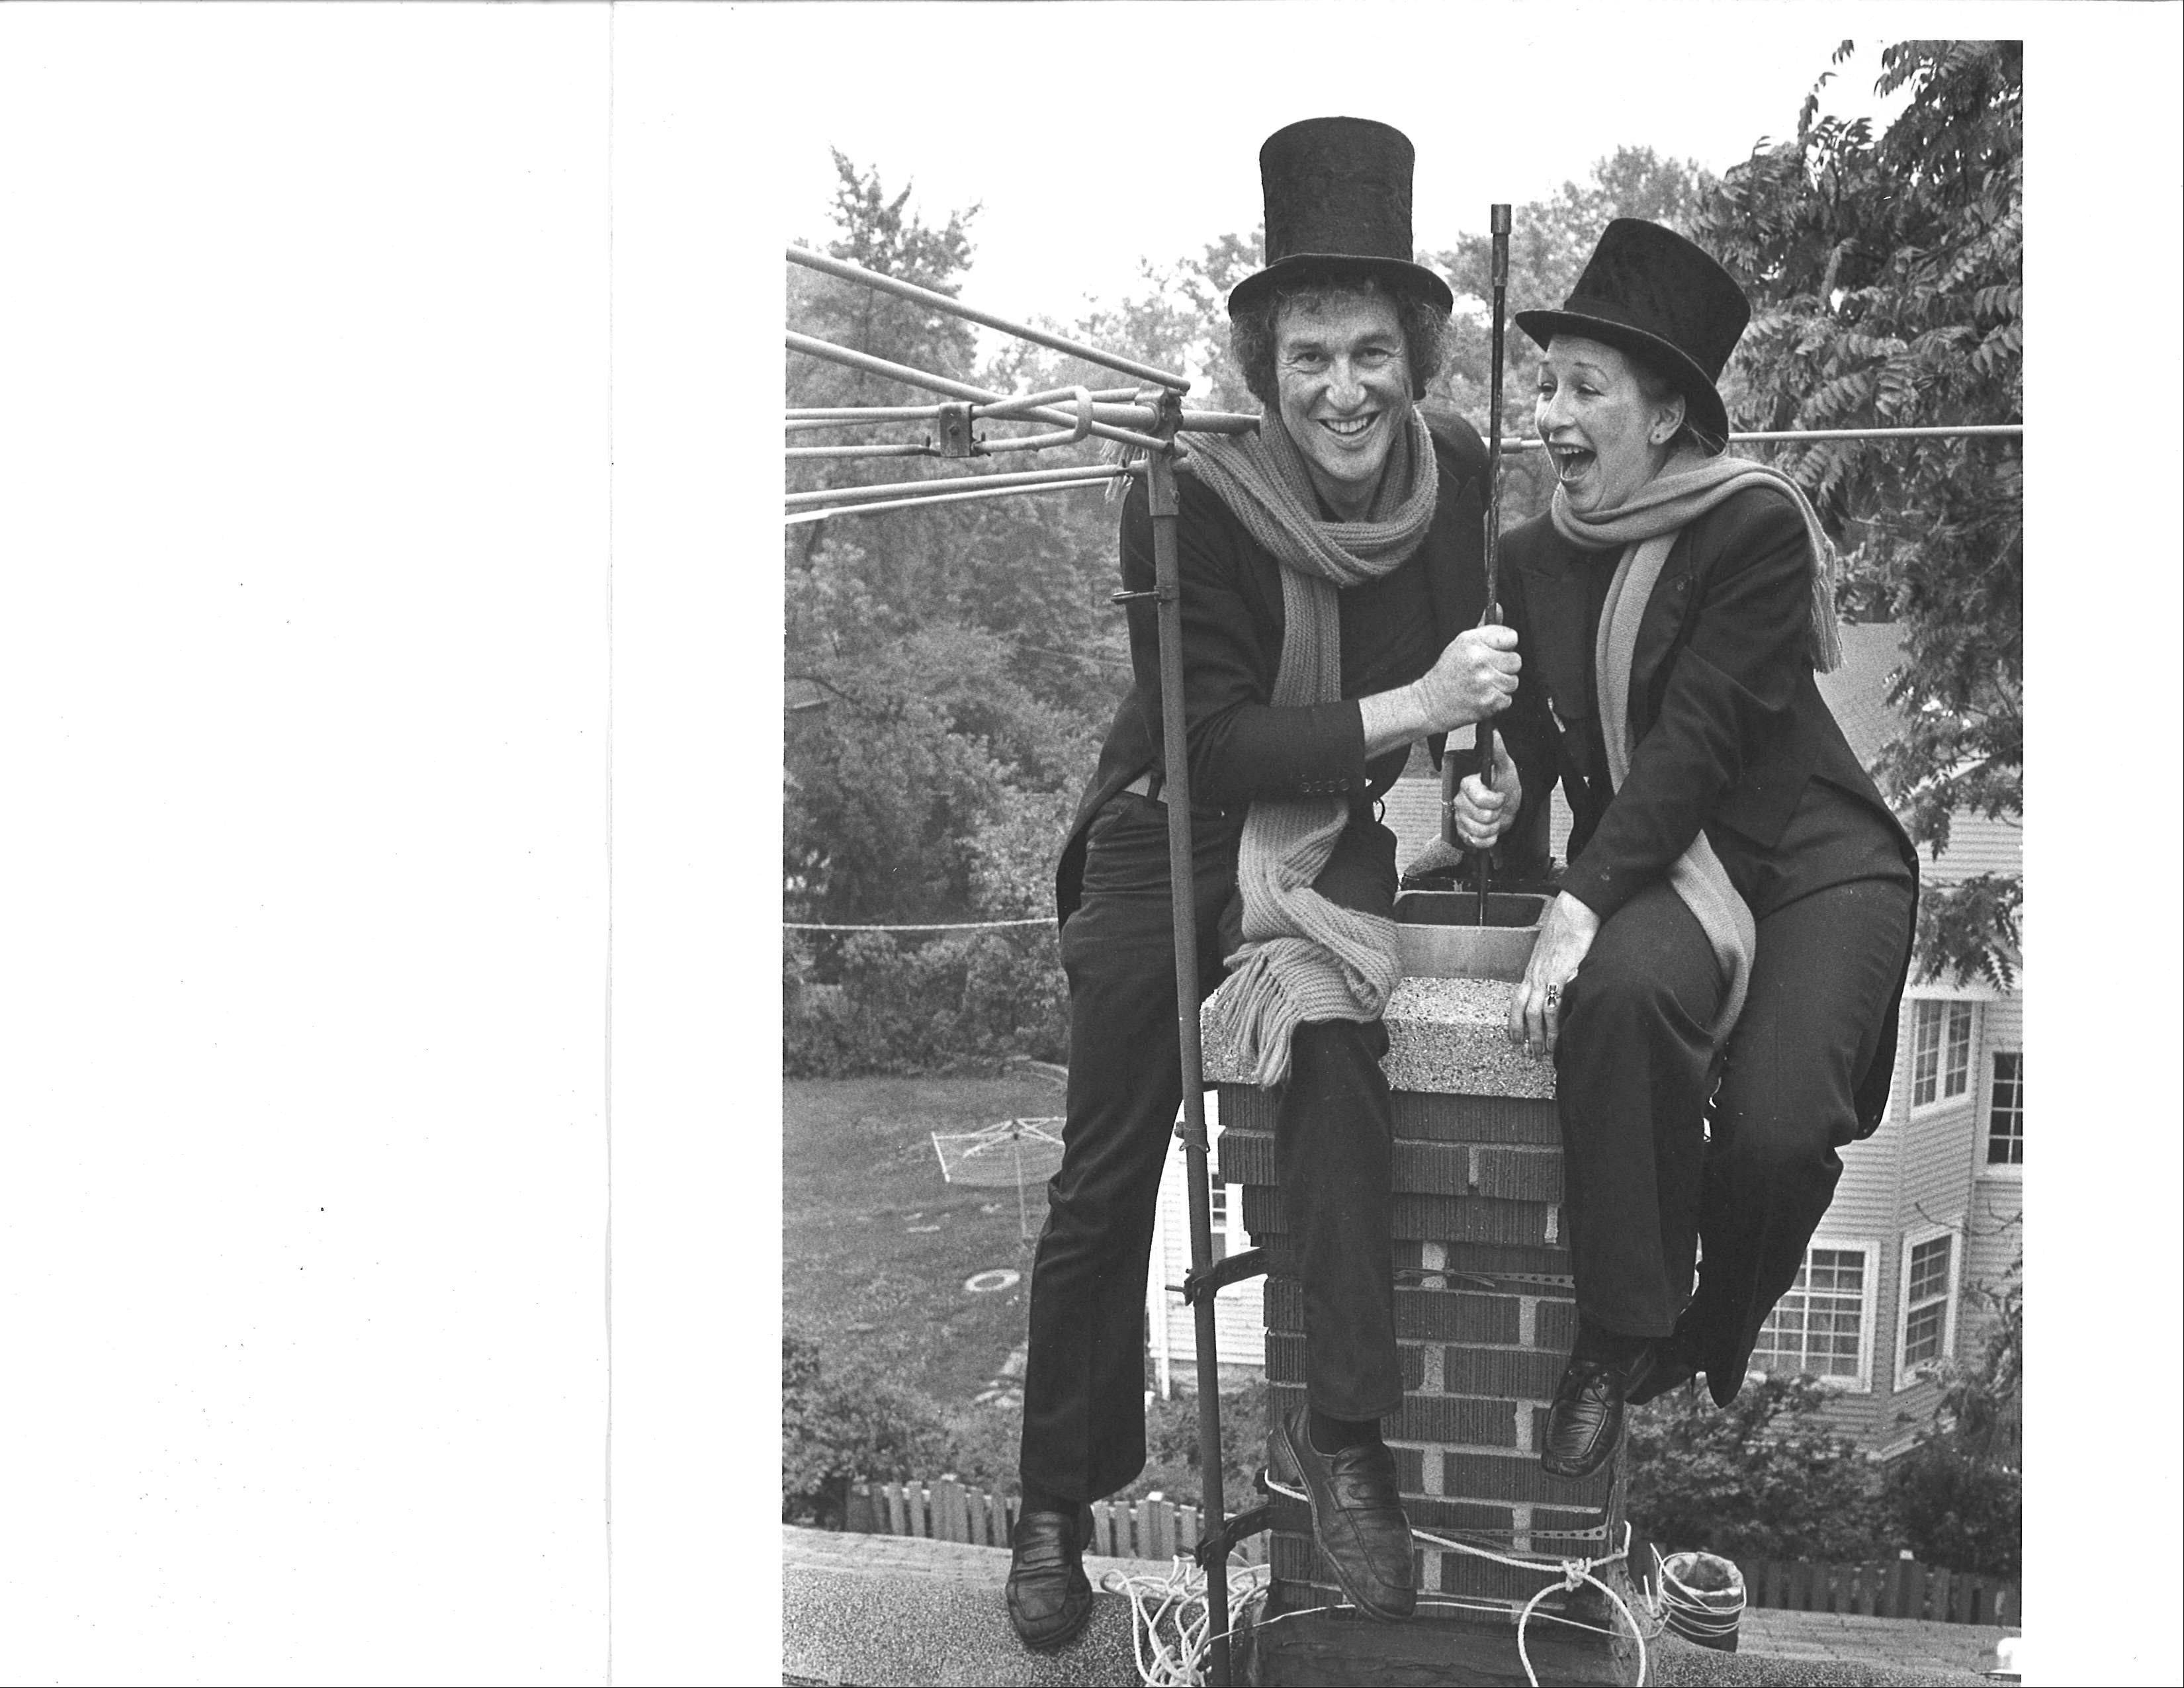 Having given up corporate careers to work together as chimney sweeps, David and Dee Stoll still use their business talents to create and promote a campaign built around their Dusty the chimney sweep character.